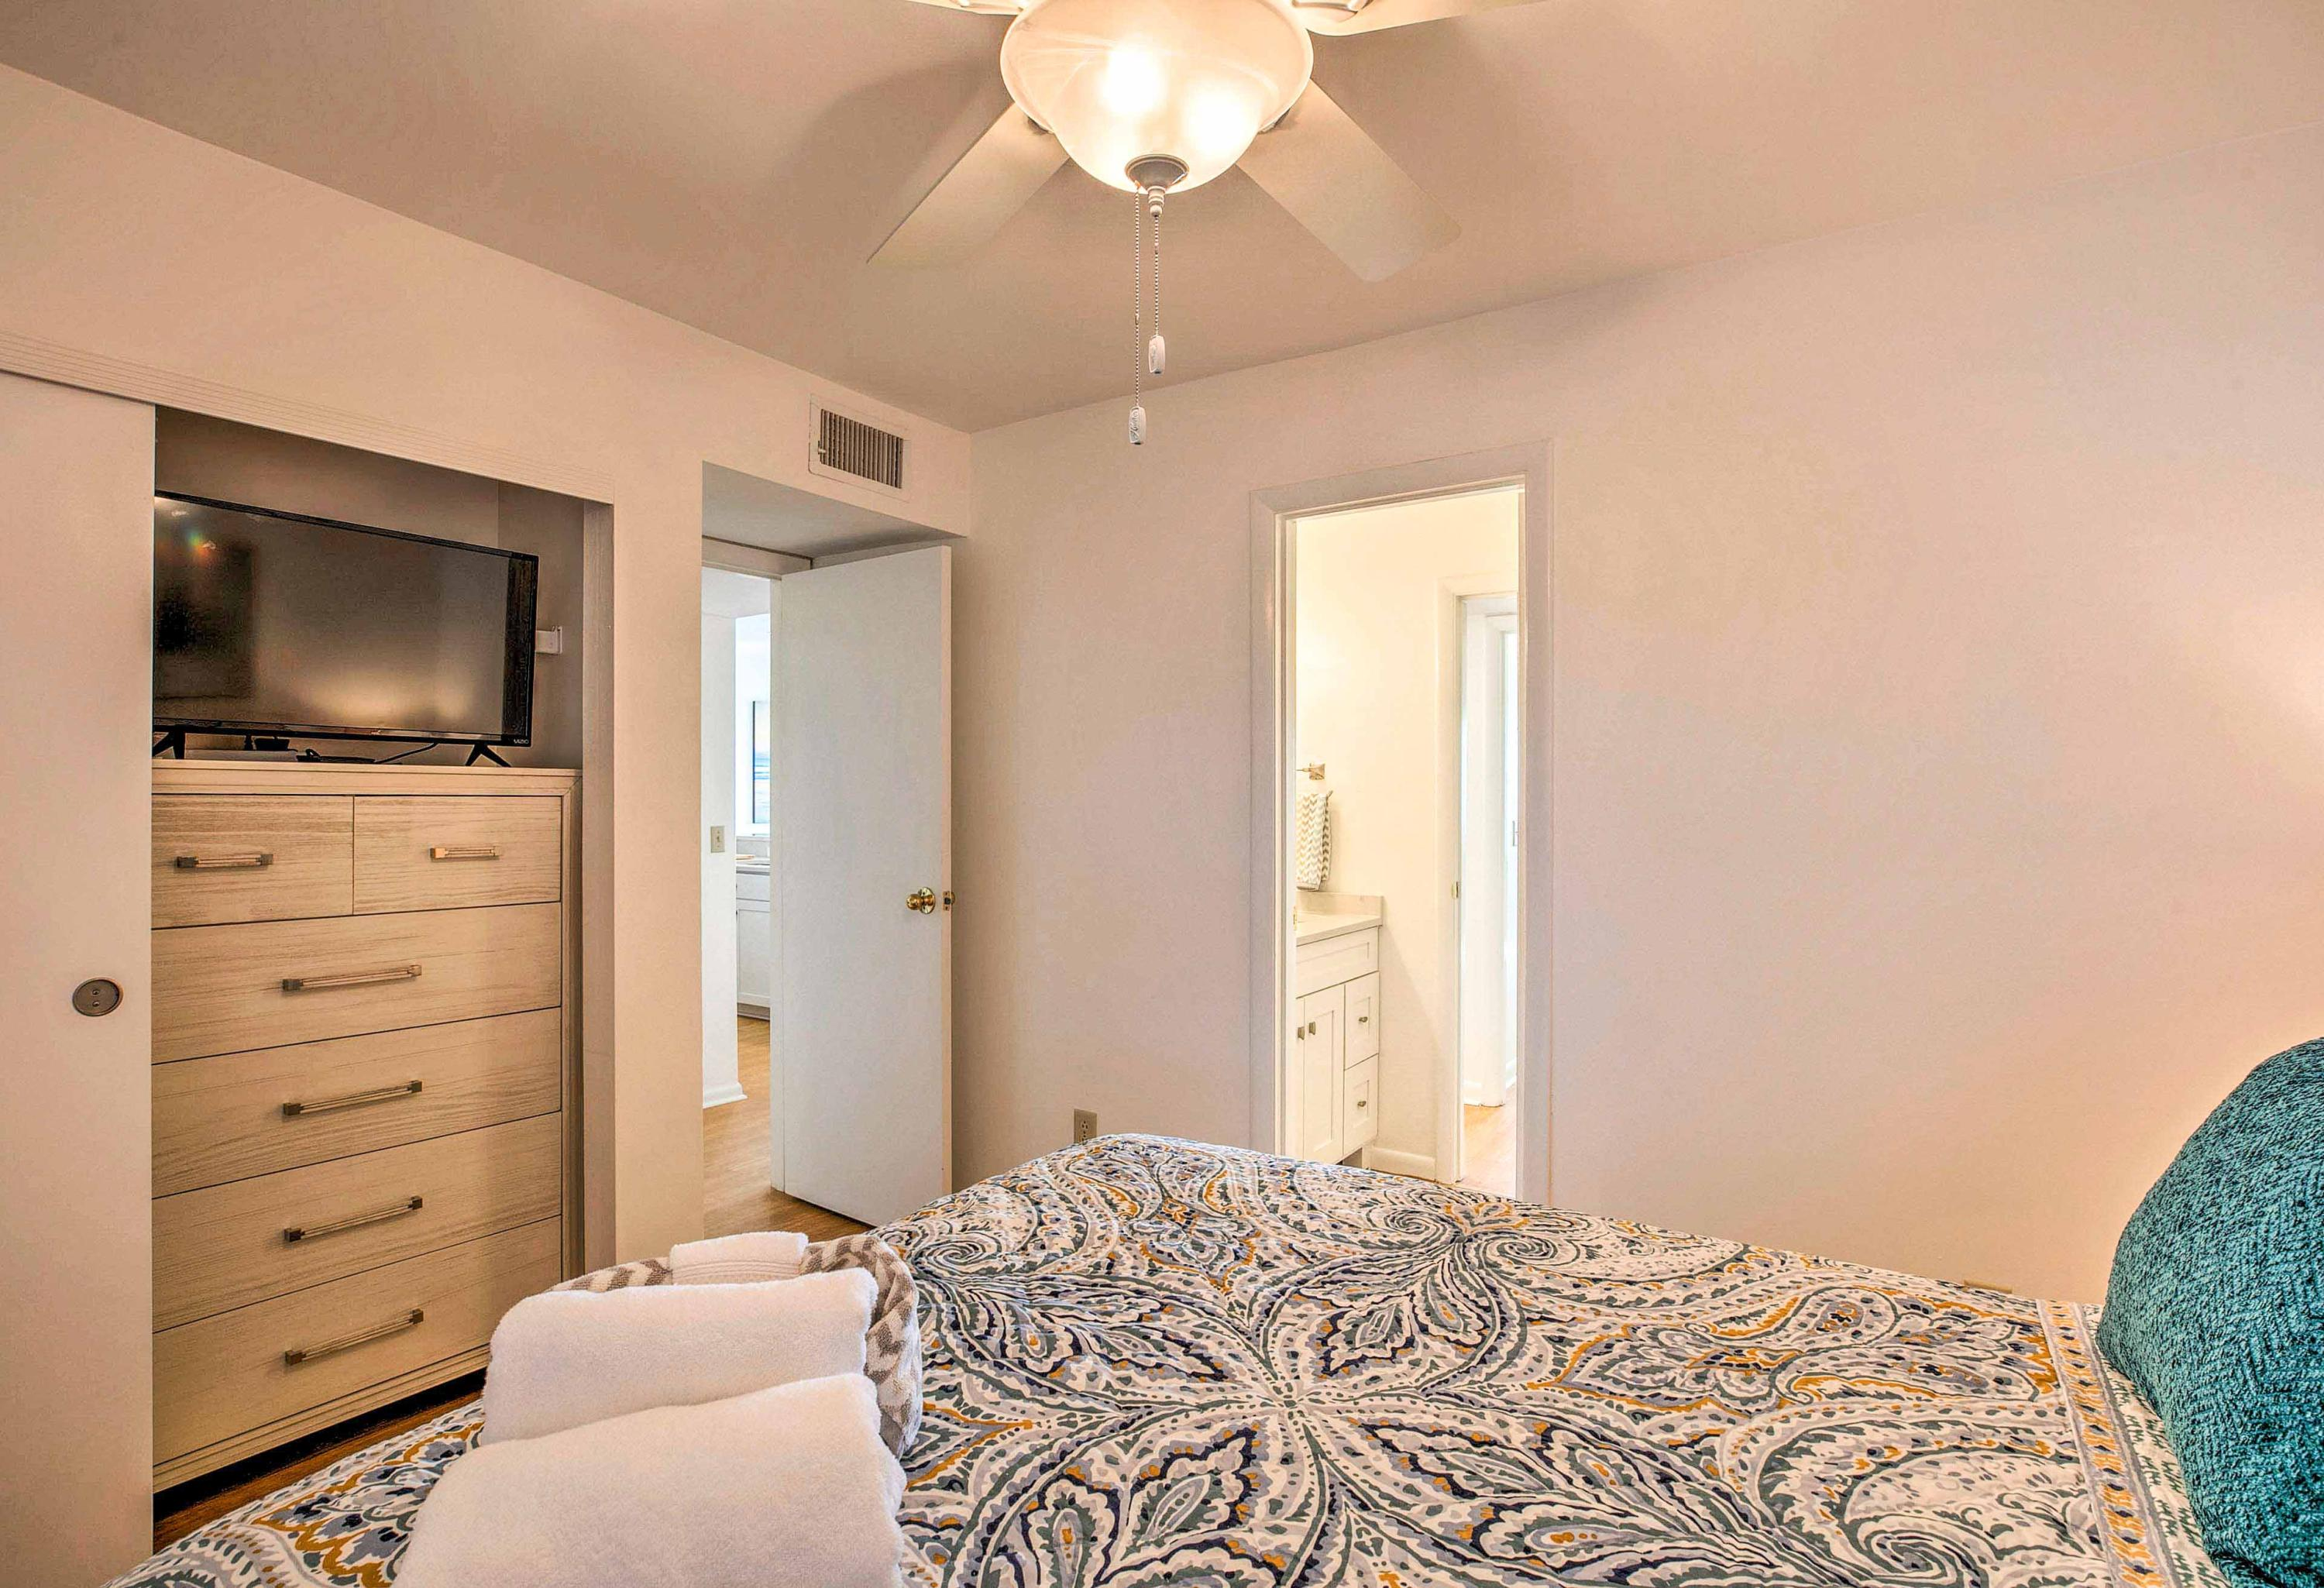 Mariners Cay Homes For Sale - 93 Mariners Cay, Folly Beach, SC - 13